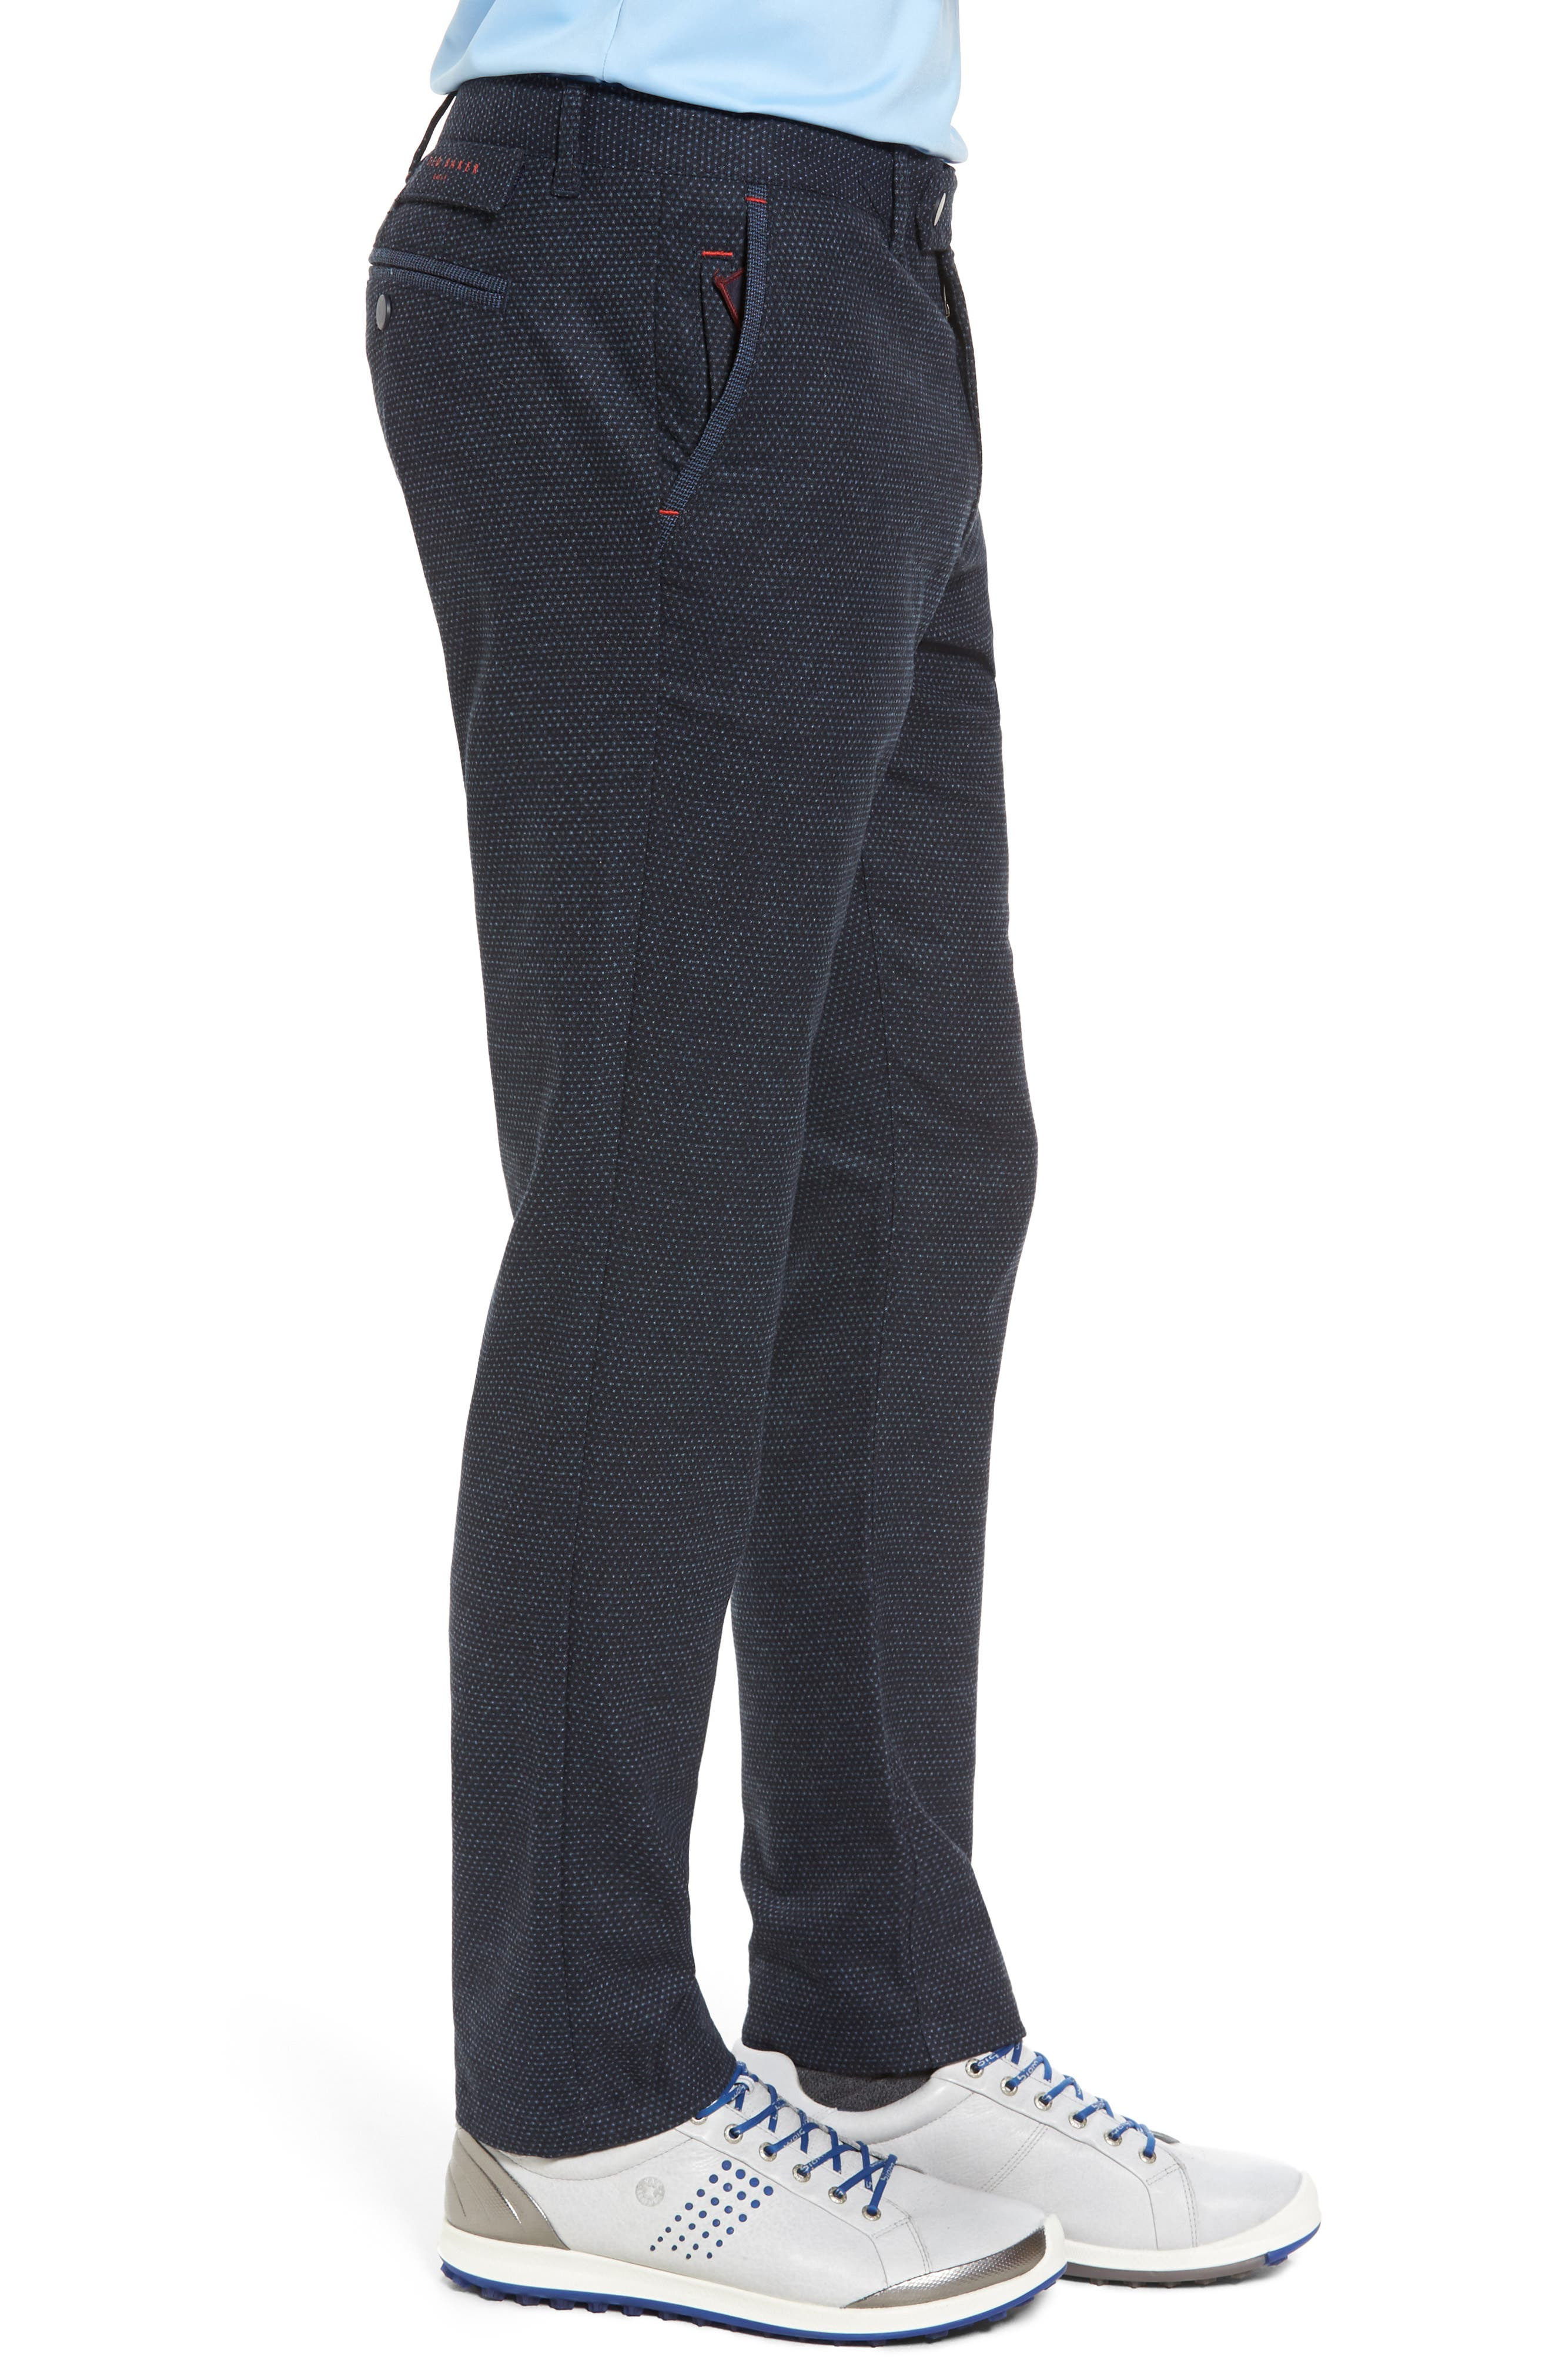 Alternate Image 3  - Ted Baker London Water Resistant Golf Trousers